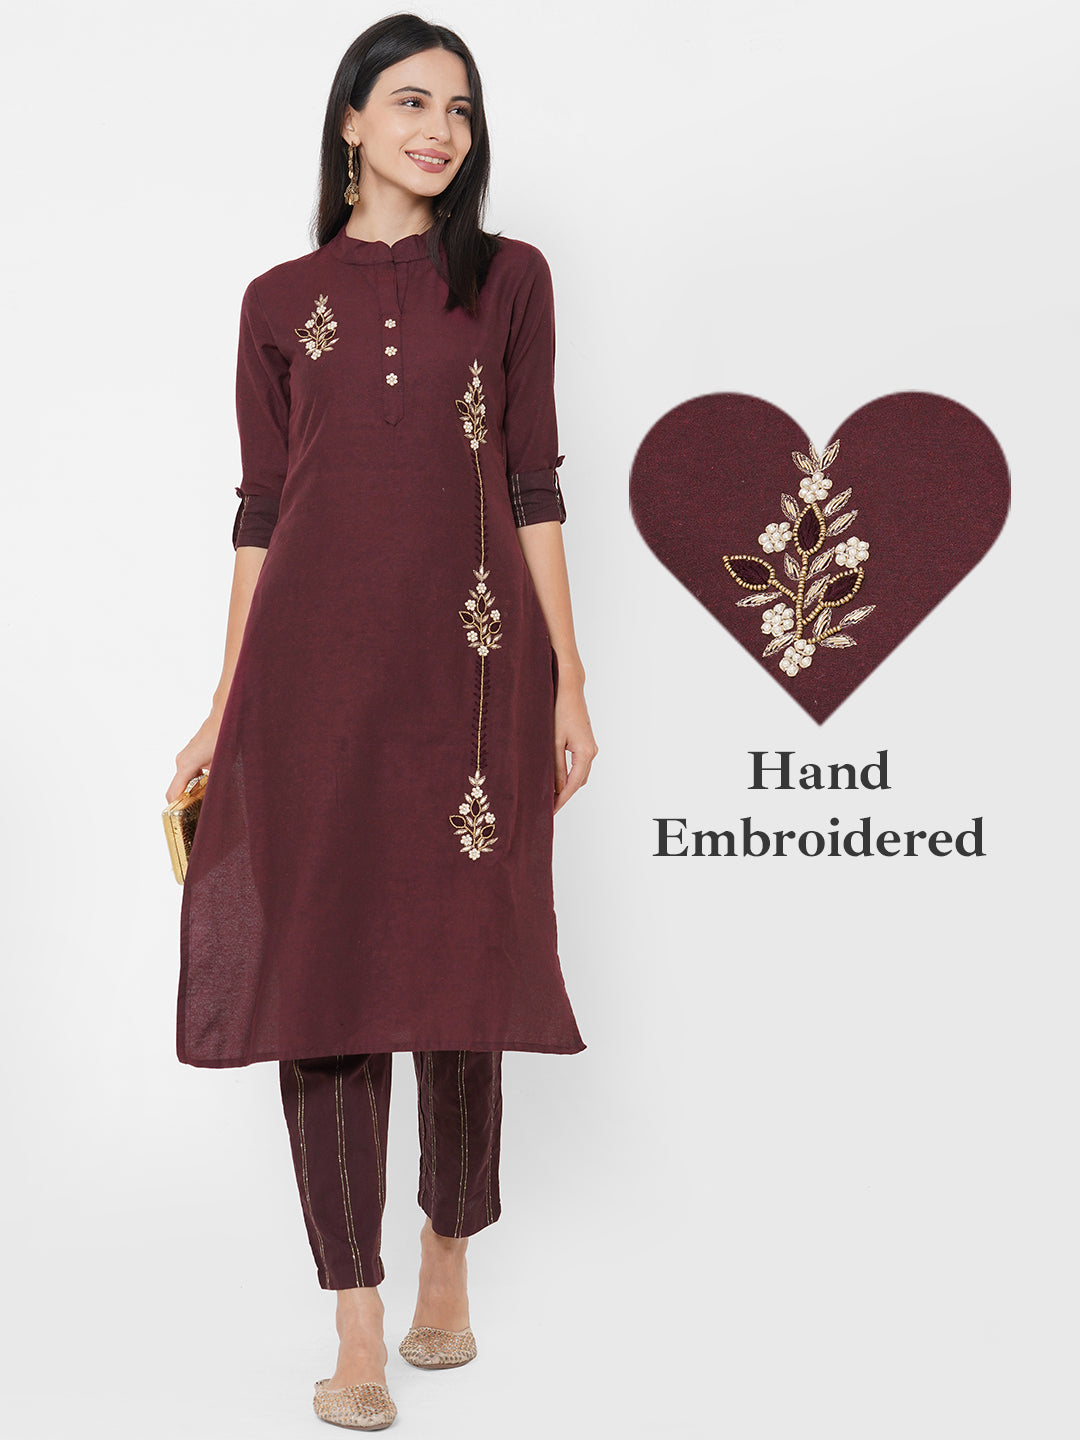 Ethnic Hand Embroidered Kurta with Woven Striped Pant - Camelot